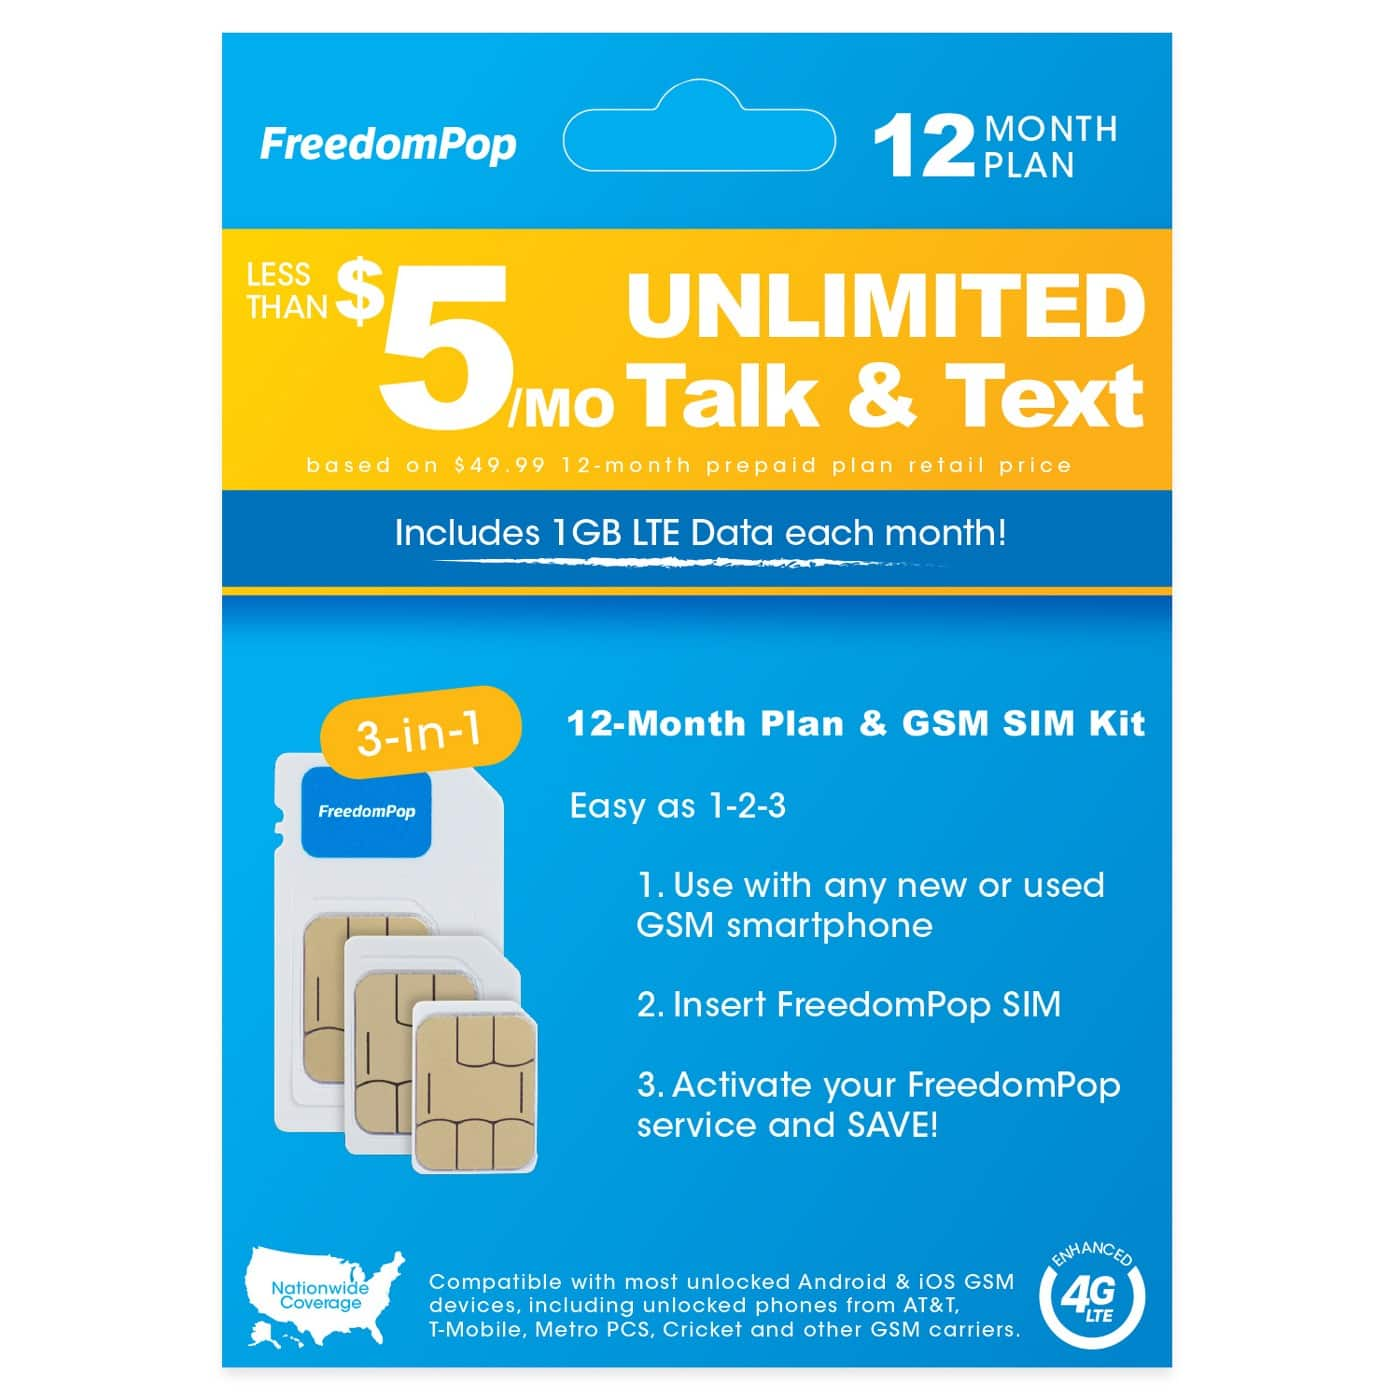 FreedomPop 12-month SIM for $30 + fees, tax, filler item (1GB data for ~$2.75/month)